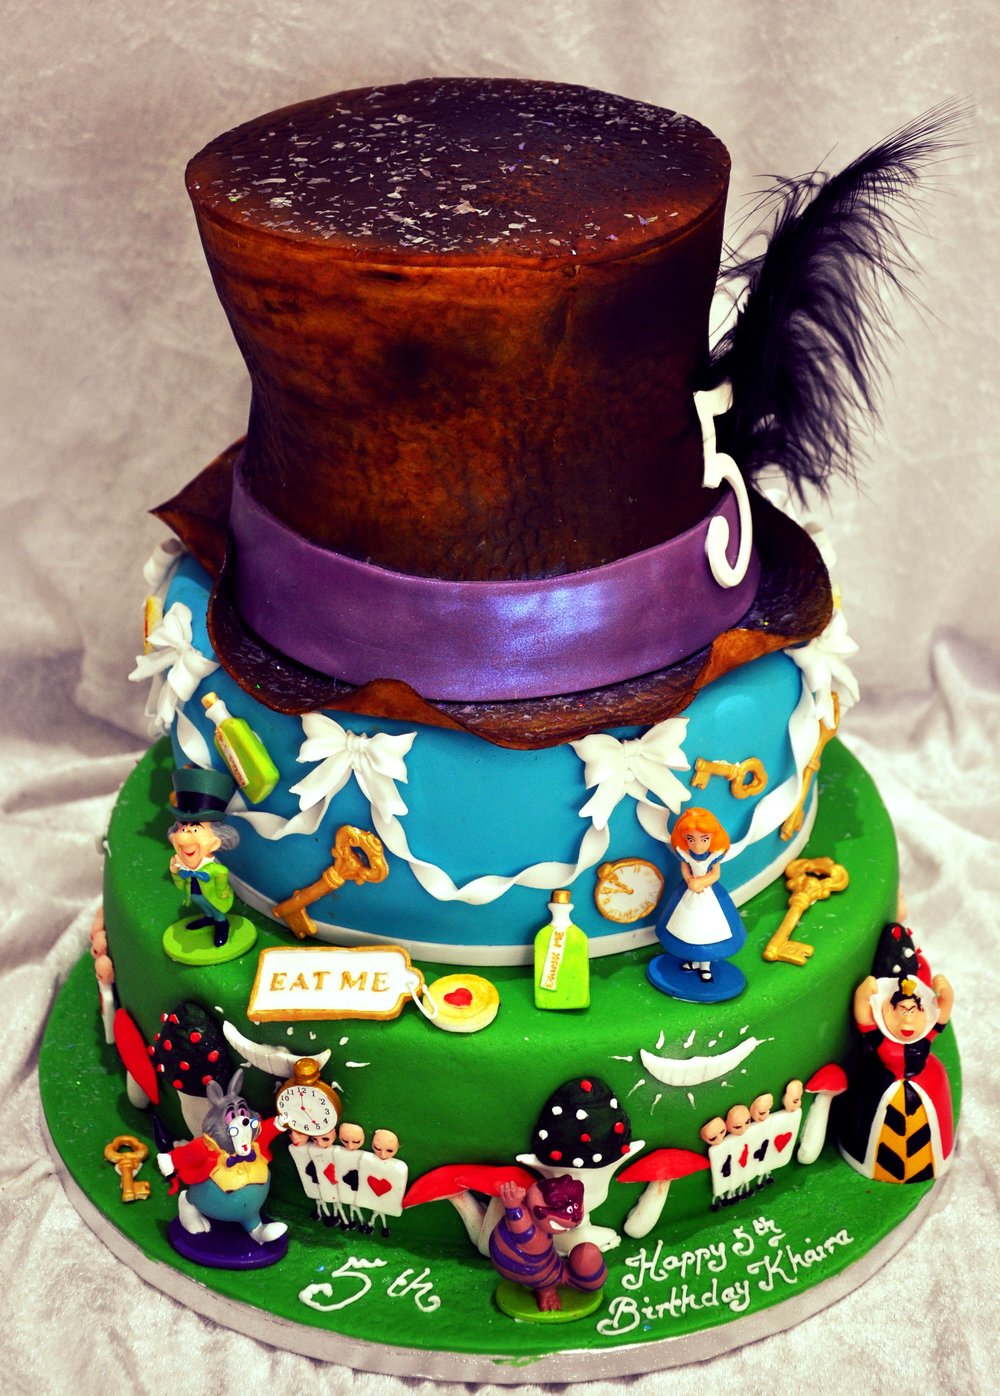 Alice in Wonderland - Three tier Alice In Wonderland cake, with a mixture of hand made sugar and plastic figures. finished with the Mad Hatter's hat and personal message.